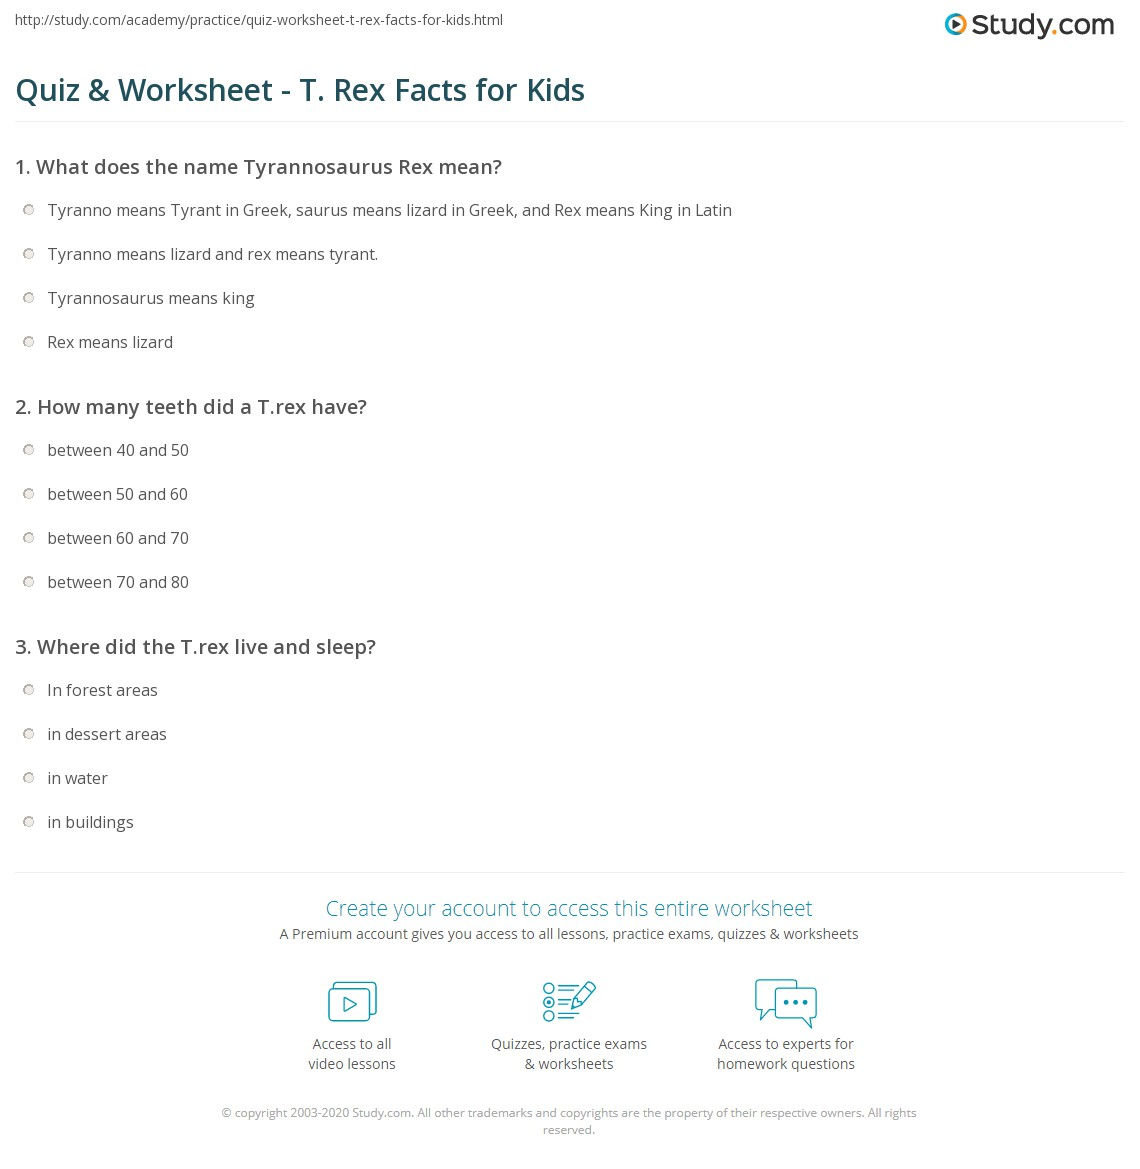 quiz-worksheet-t-rex-facts-for-kids